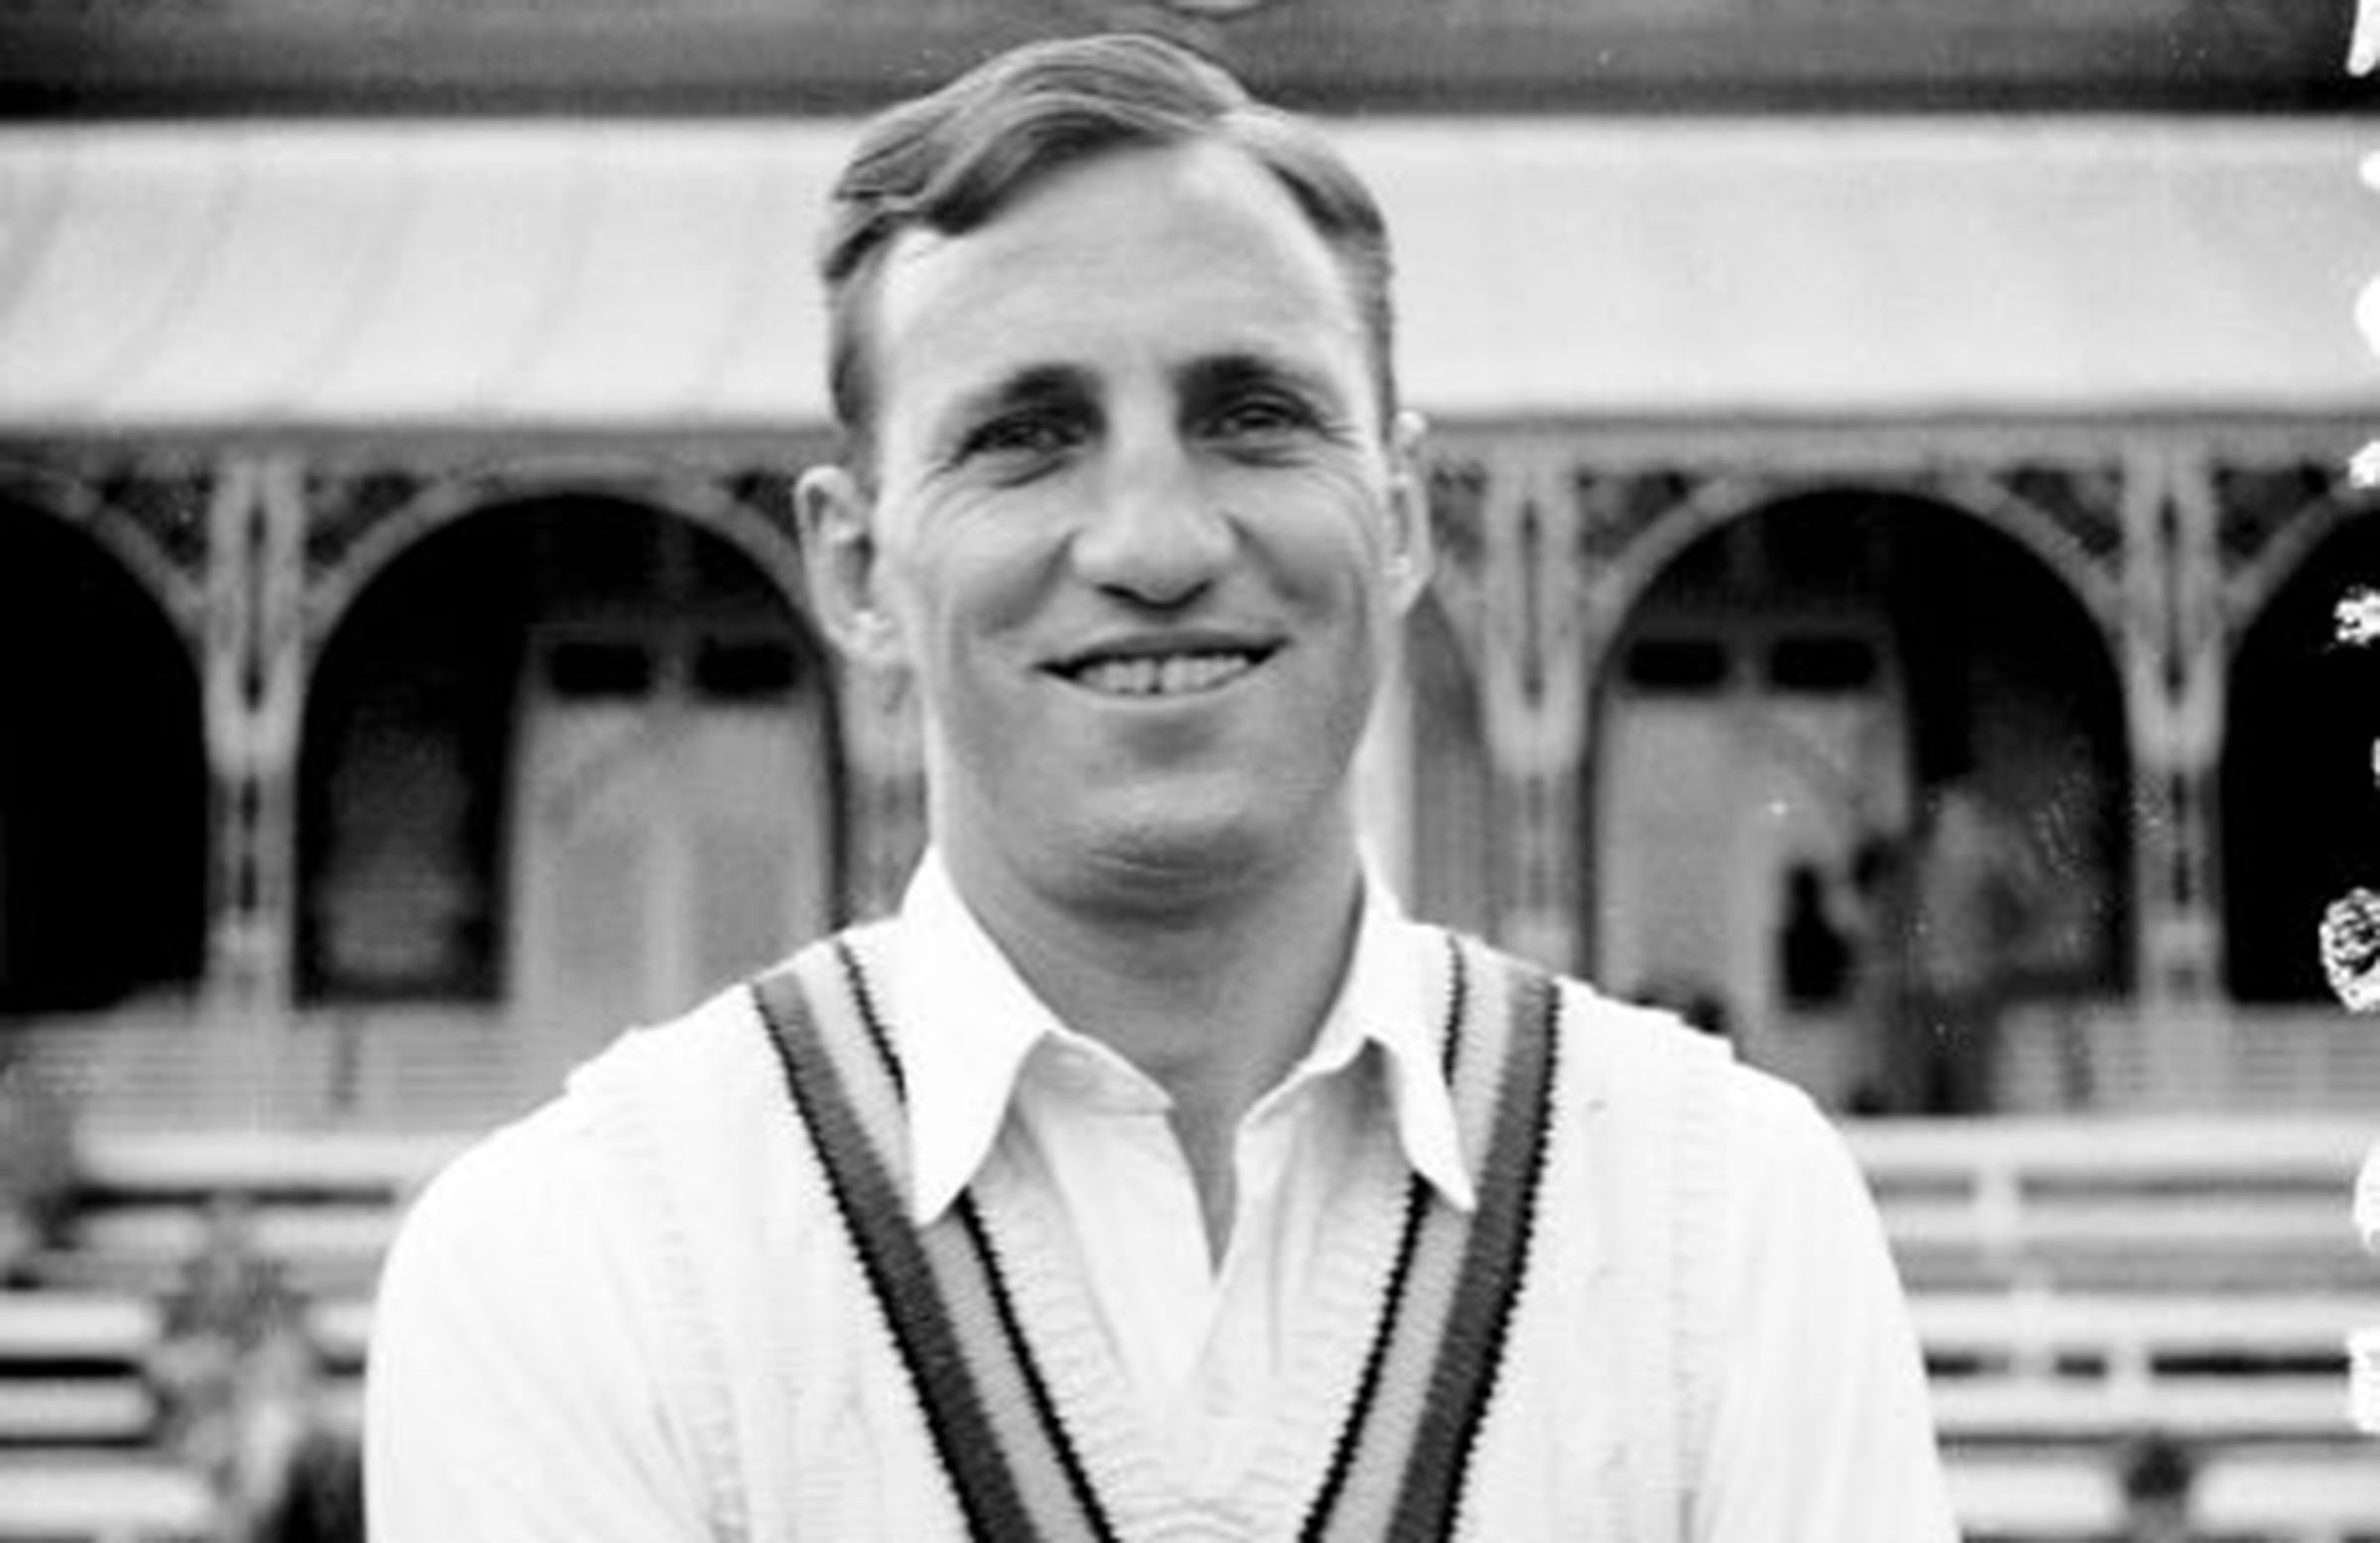 Hutton poses while playing for Yorkshire in 1947 // Getty